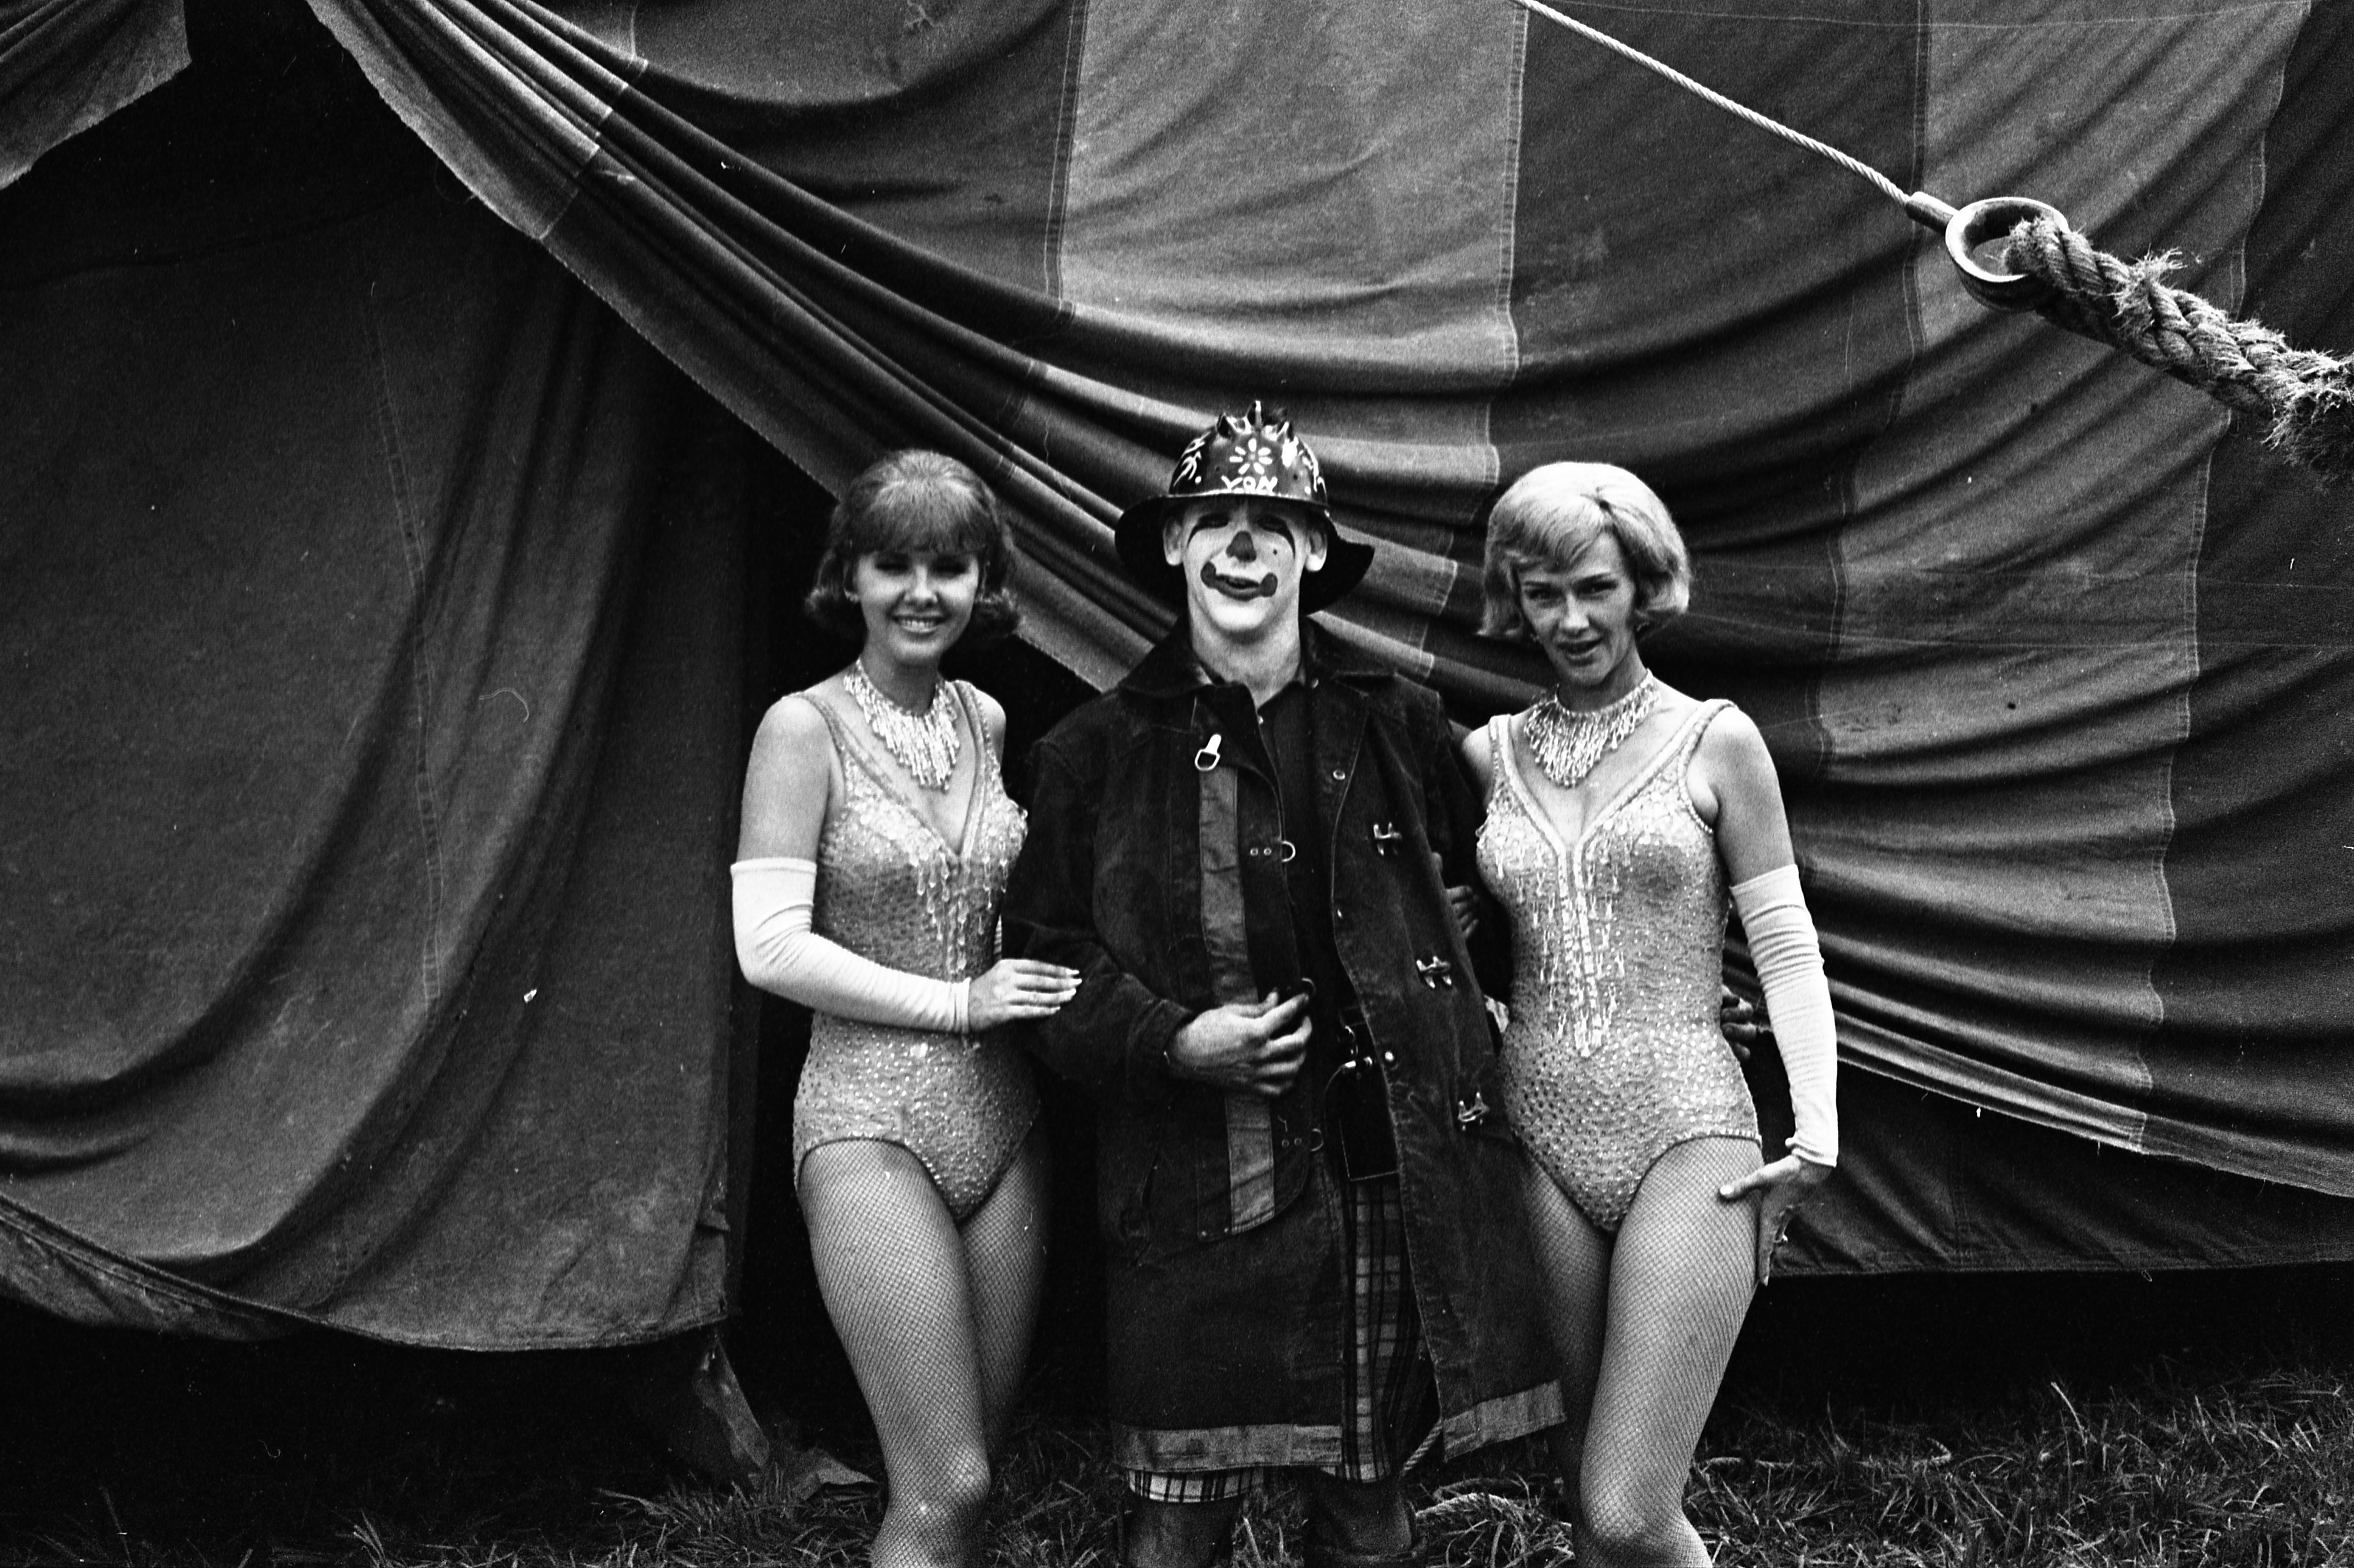 Clown With Other Circus Performers At The Clyde-Beatty Cole Brothers Circus, August 8, 1968 image